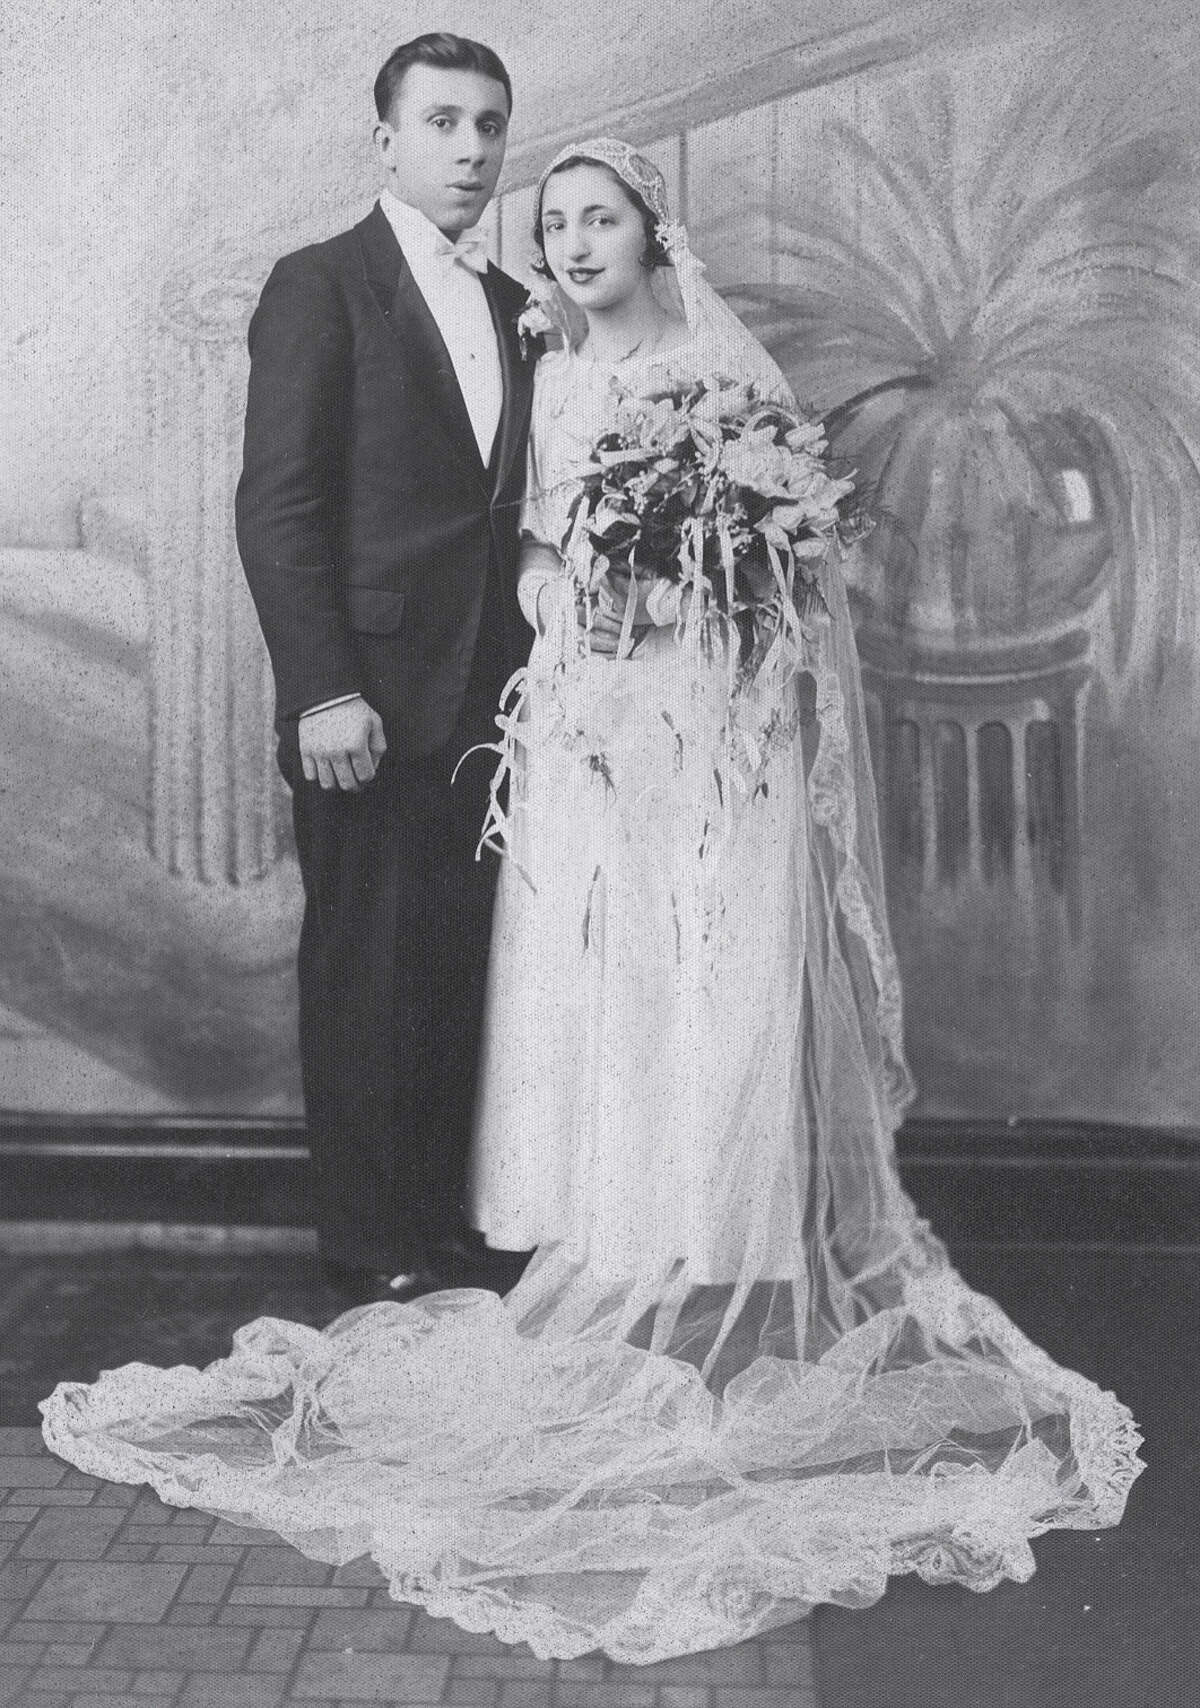 A wedding portrait of John and Ann Betar taken 80 years ago. The Fairfield couple have been named the 2013